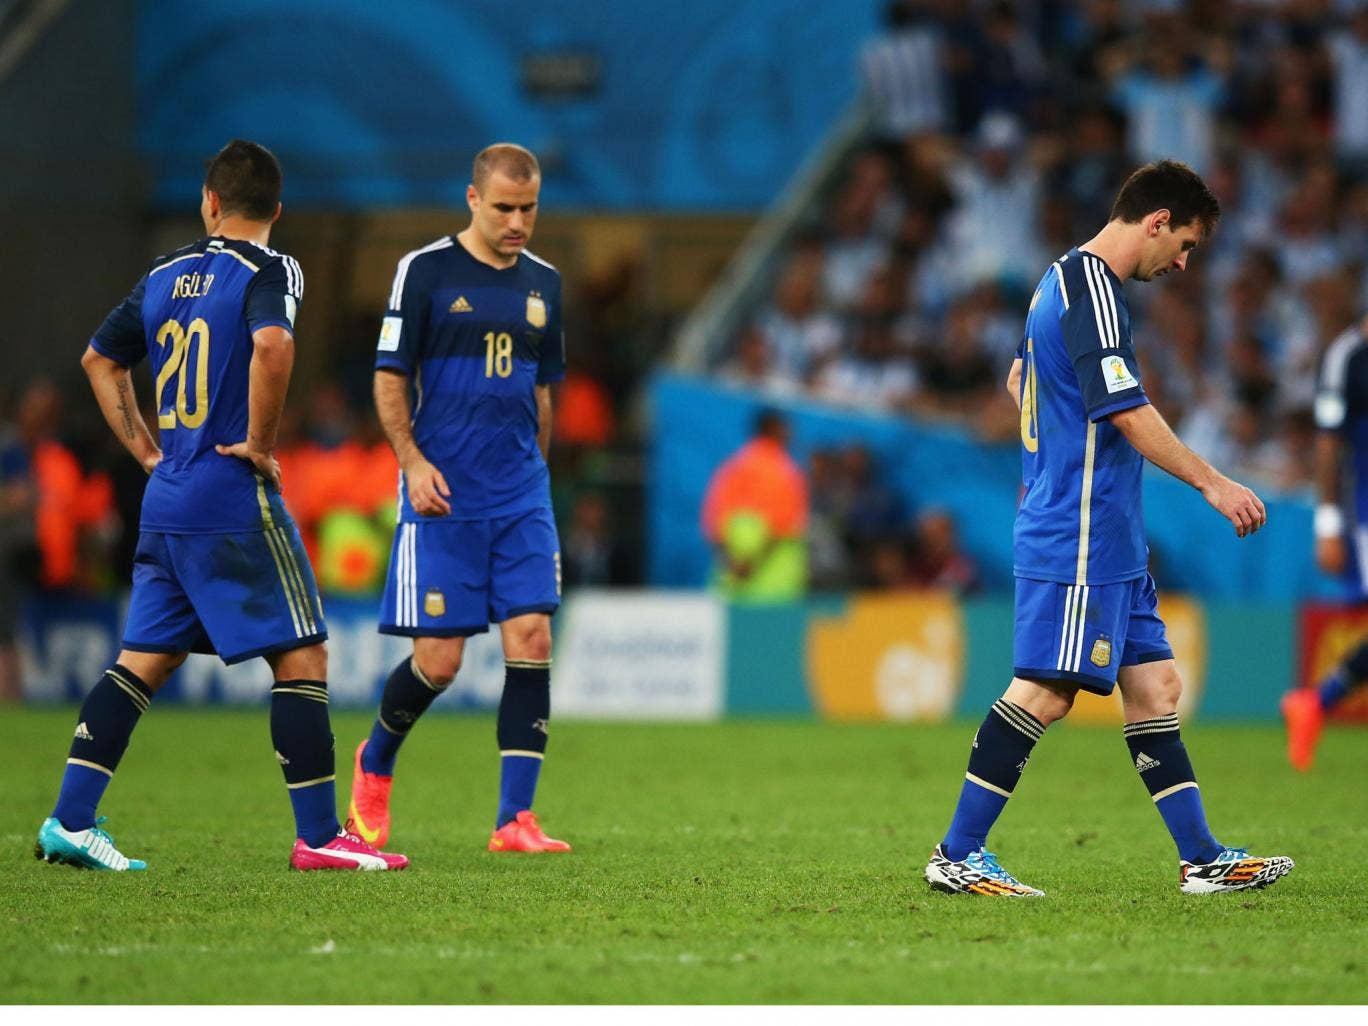 Lionel Messi, Sergio Aguero and Rodrigo Palacio trudge after the pitch after the World Cup final